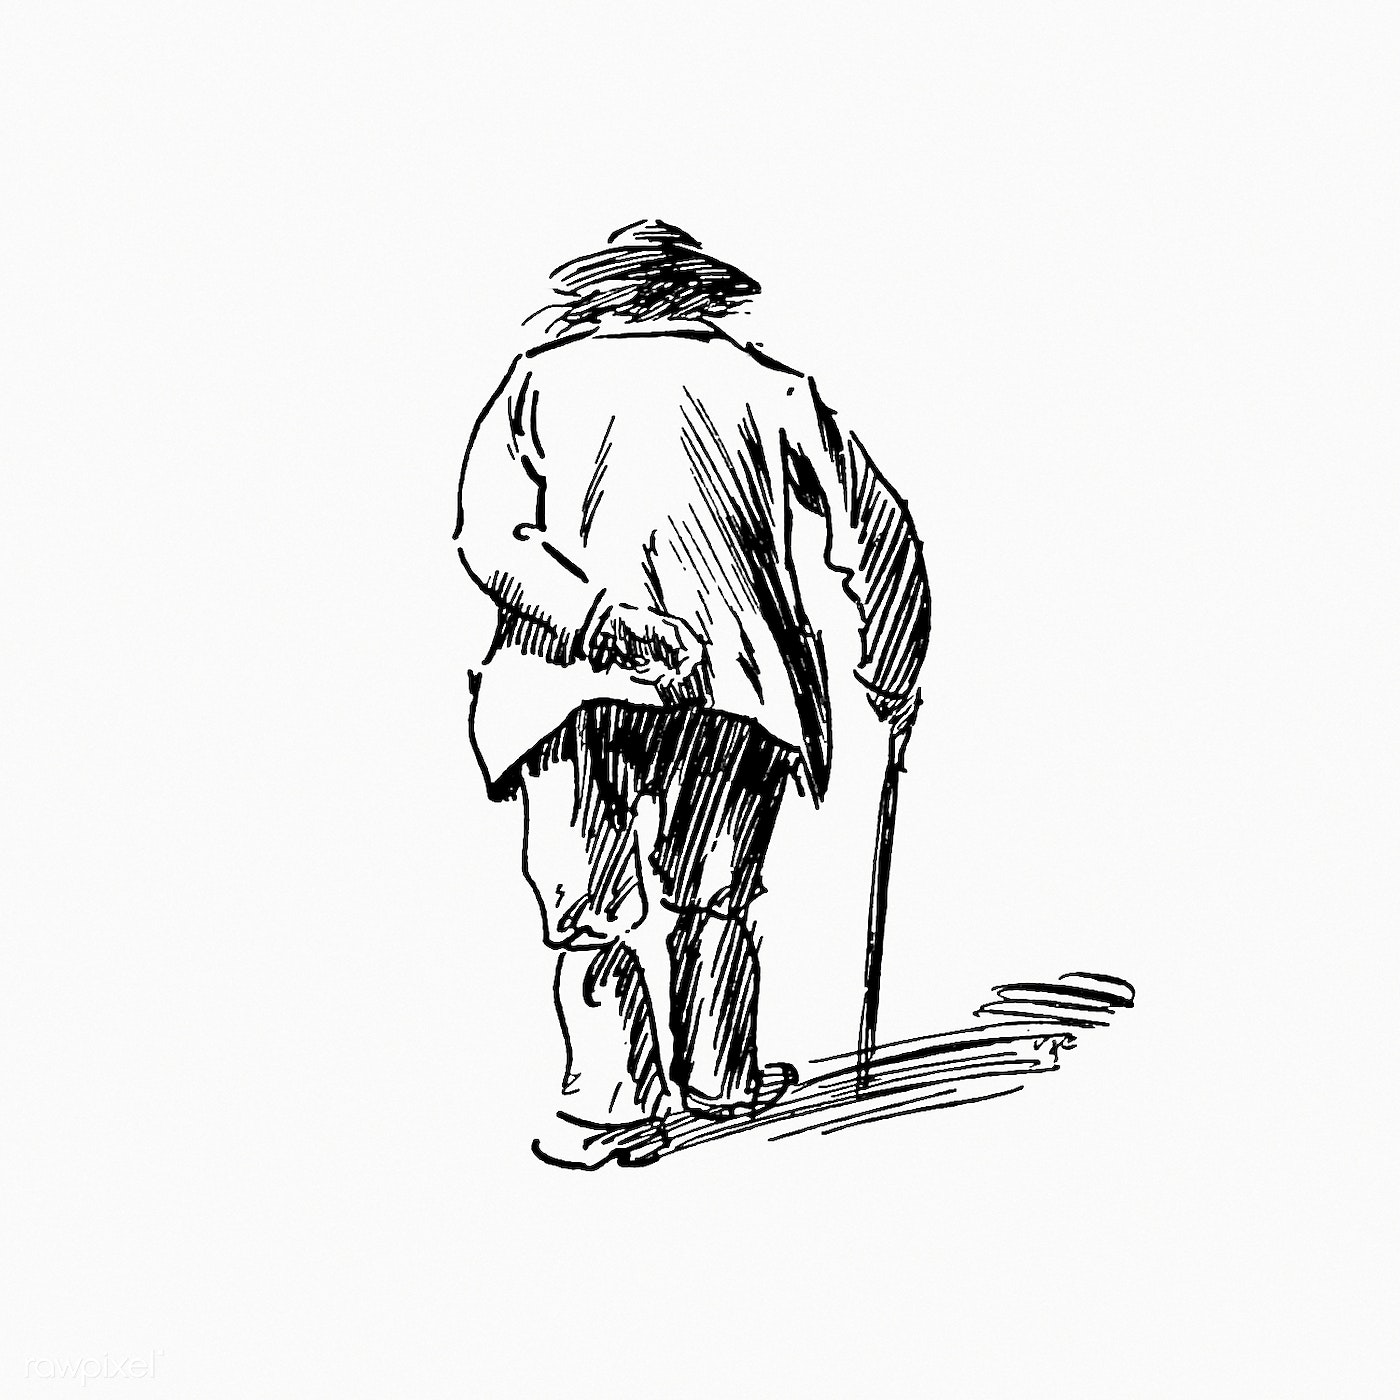 Drawing of an elderly man's back